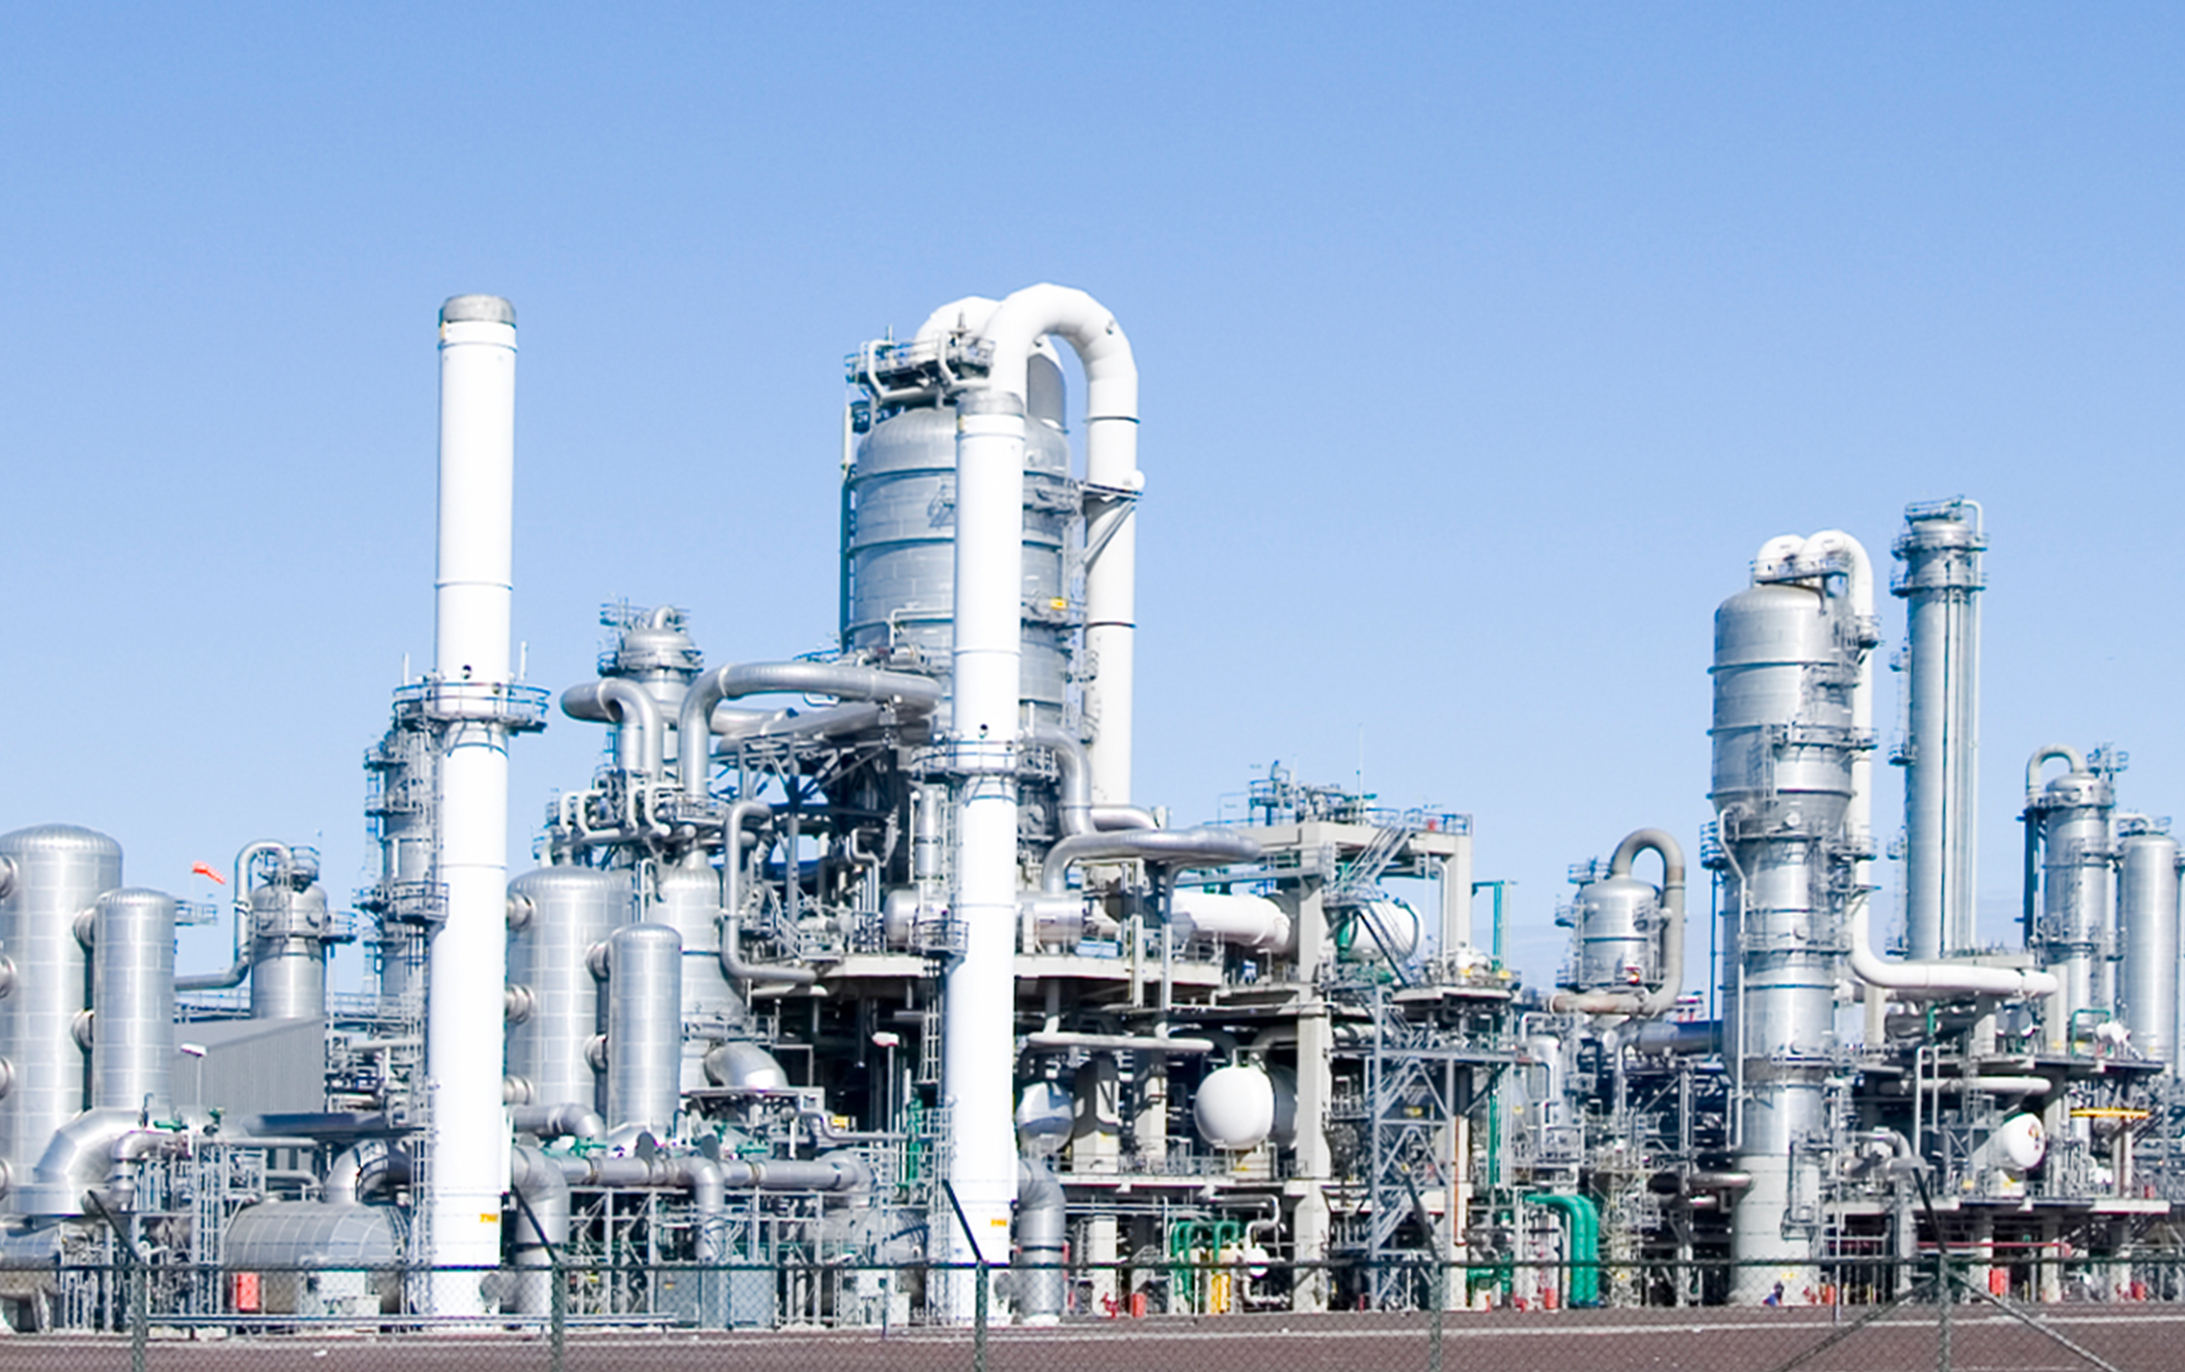 refineries-more-industries-thumbnail